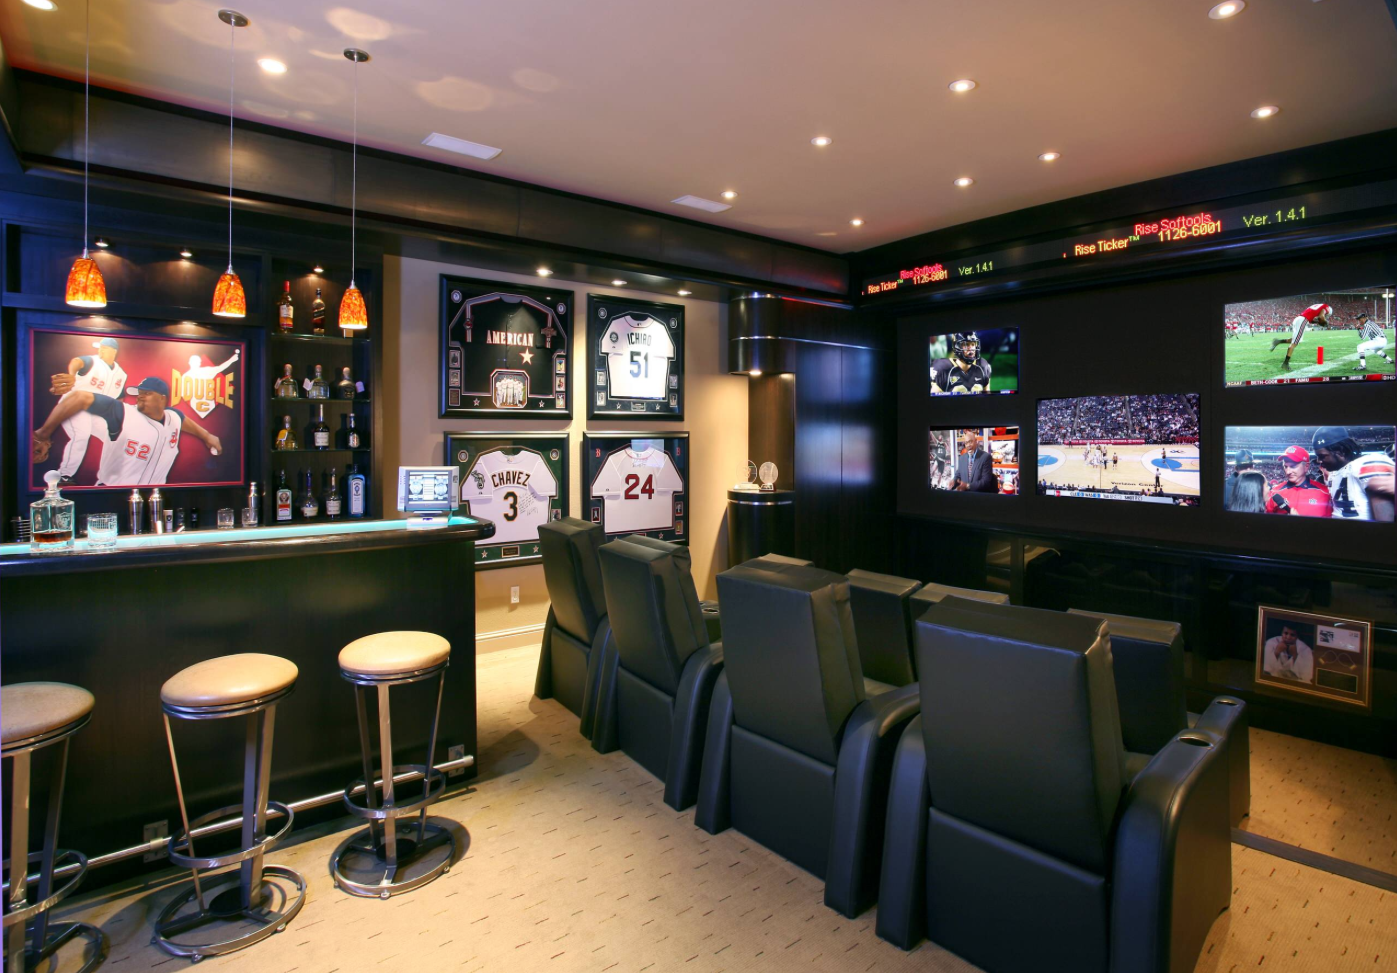 50 Best Man Cave Ideas and Designs for 2016 | Sports bars, Bar and ...